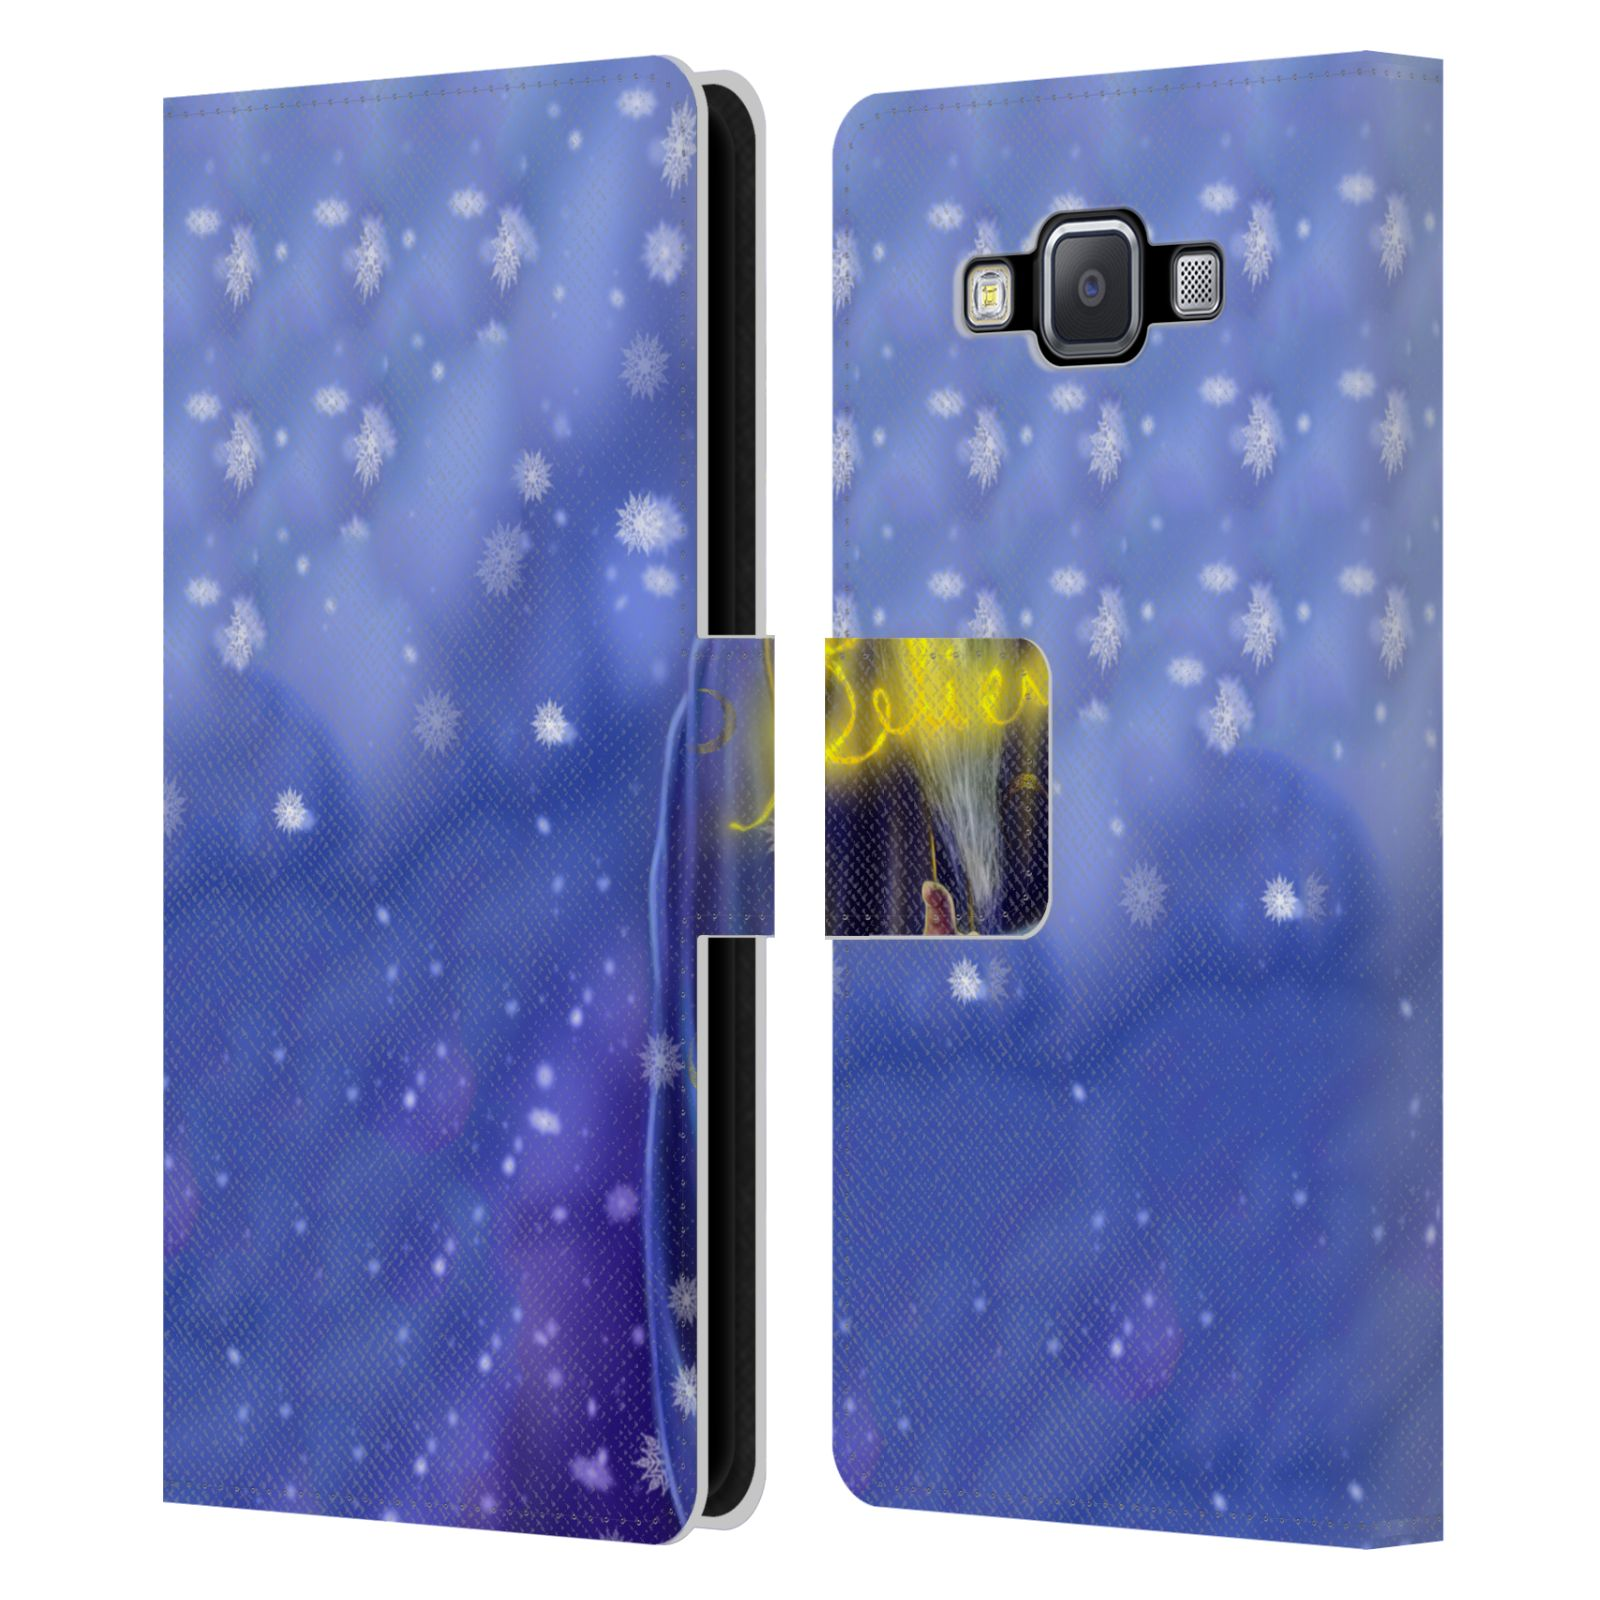 TIFFANY-TOLAND-SCOTT-WITCHES-AND-WIZARD-LEATHER-BOOK-CASE-FOR-SAMSUNG-PHONES-2